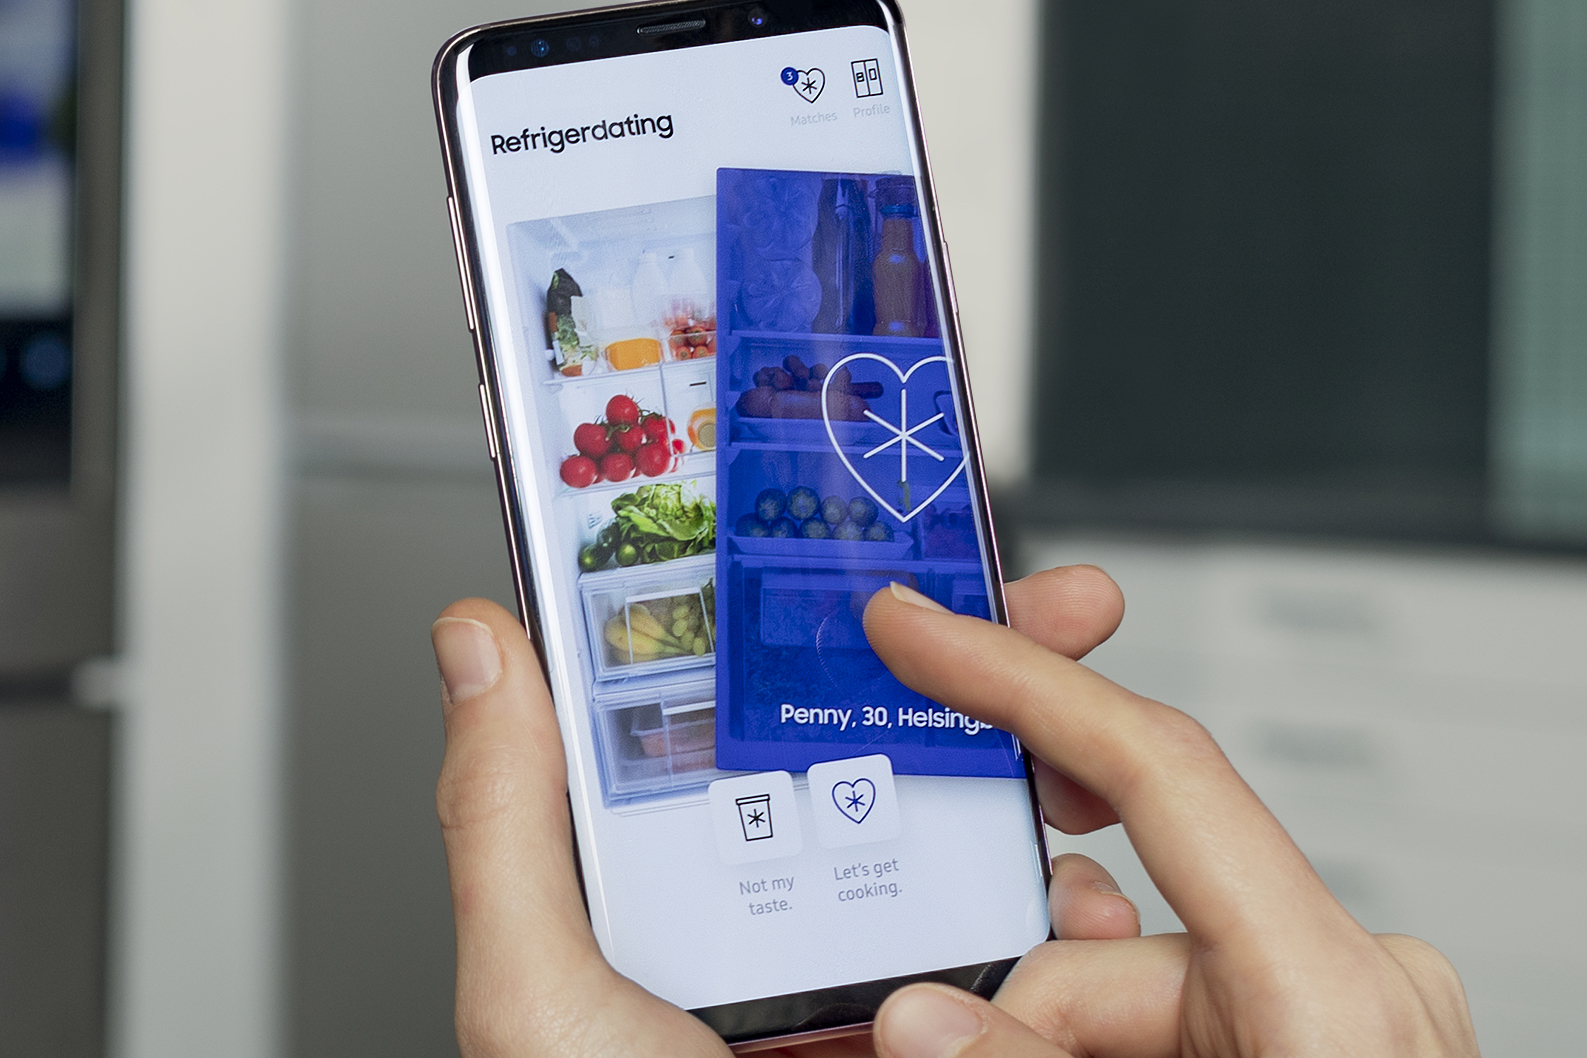 Samsung's dating service lets you swipe right if you fall in love with somebody's fridge